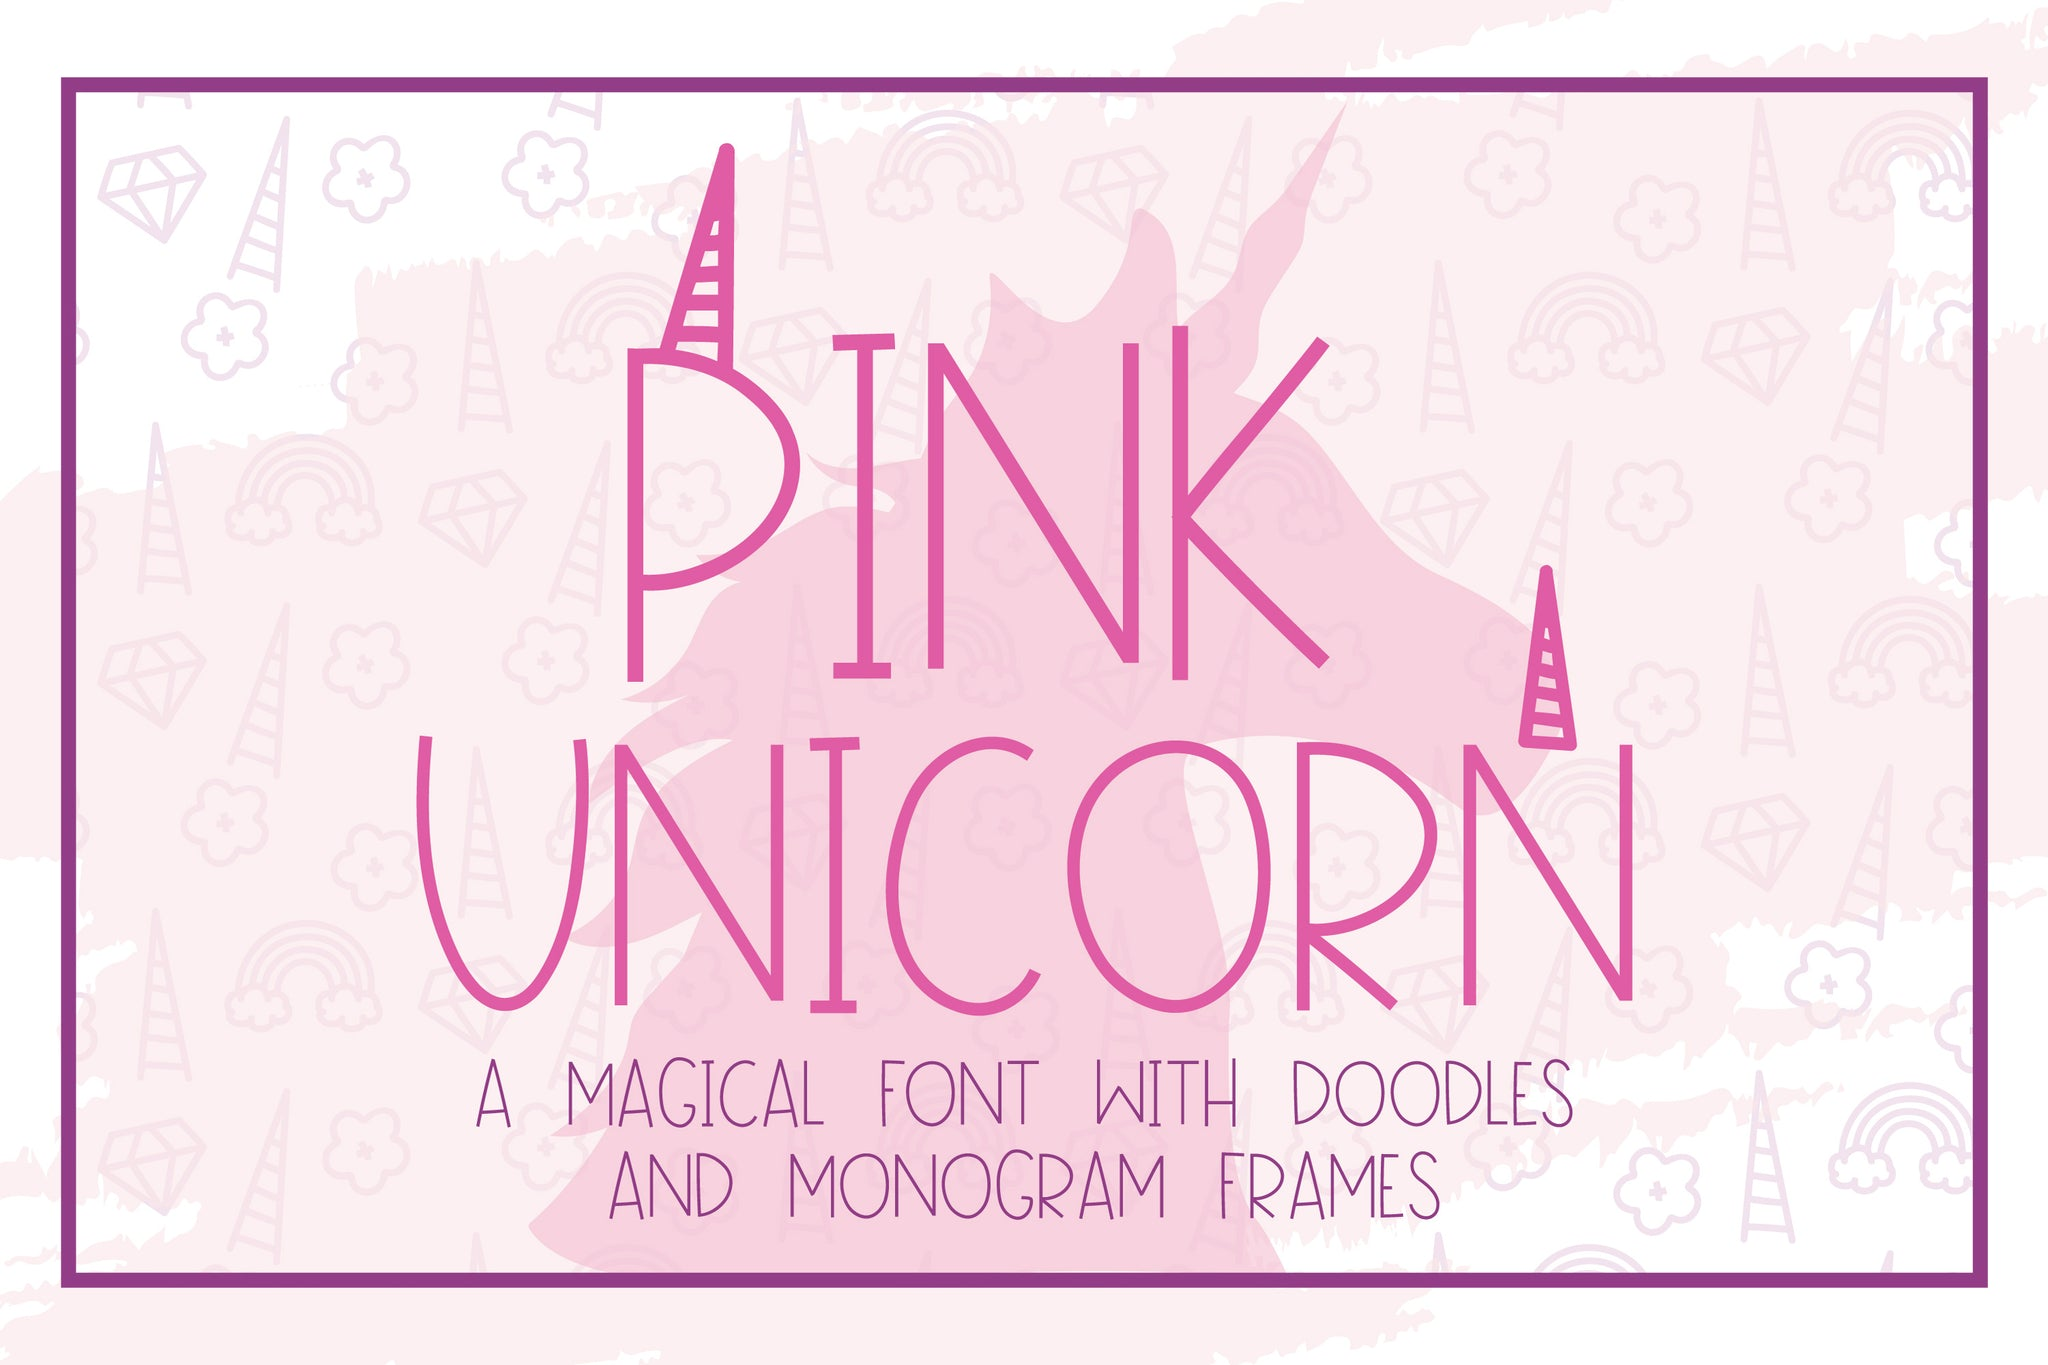 Pink Unicorn - A Magical Monogram Font